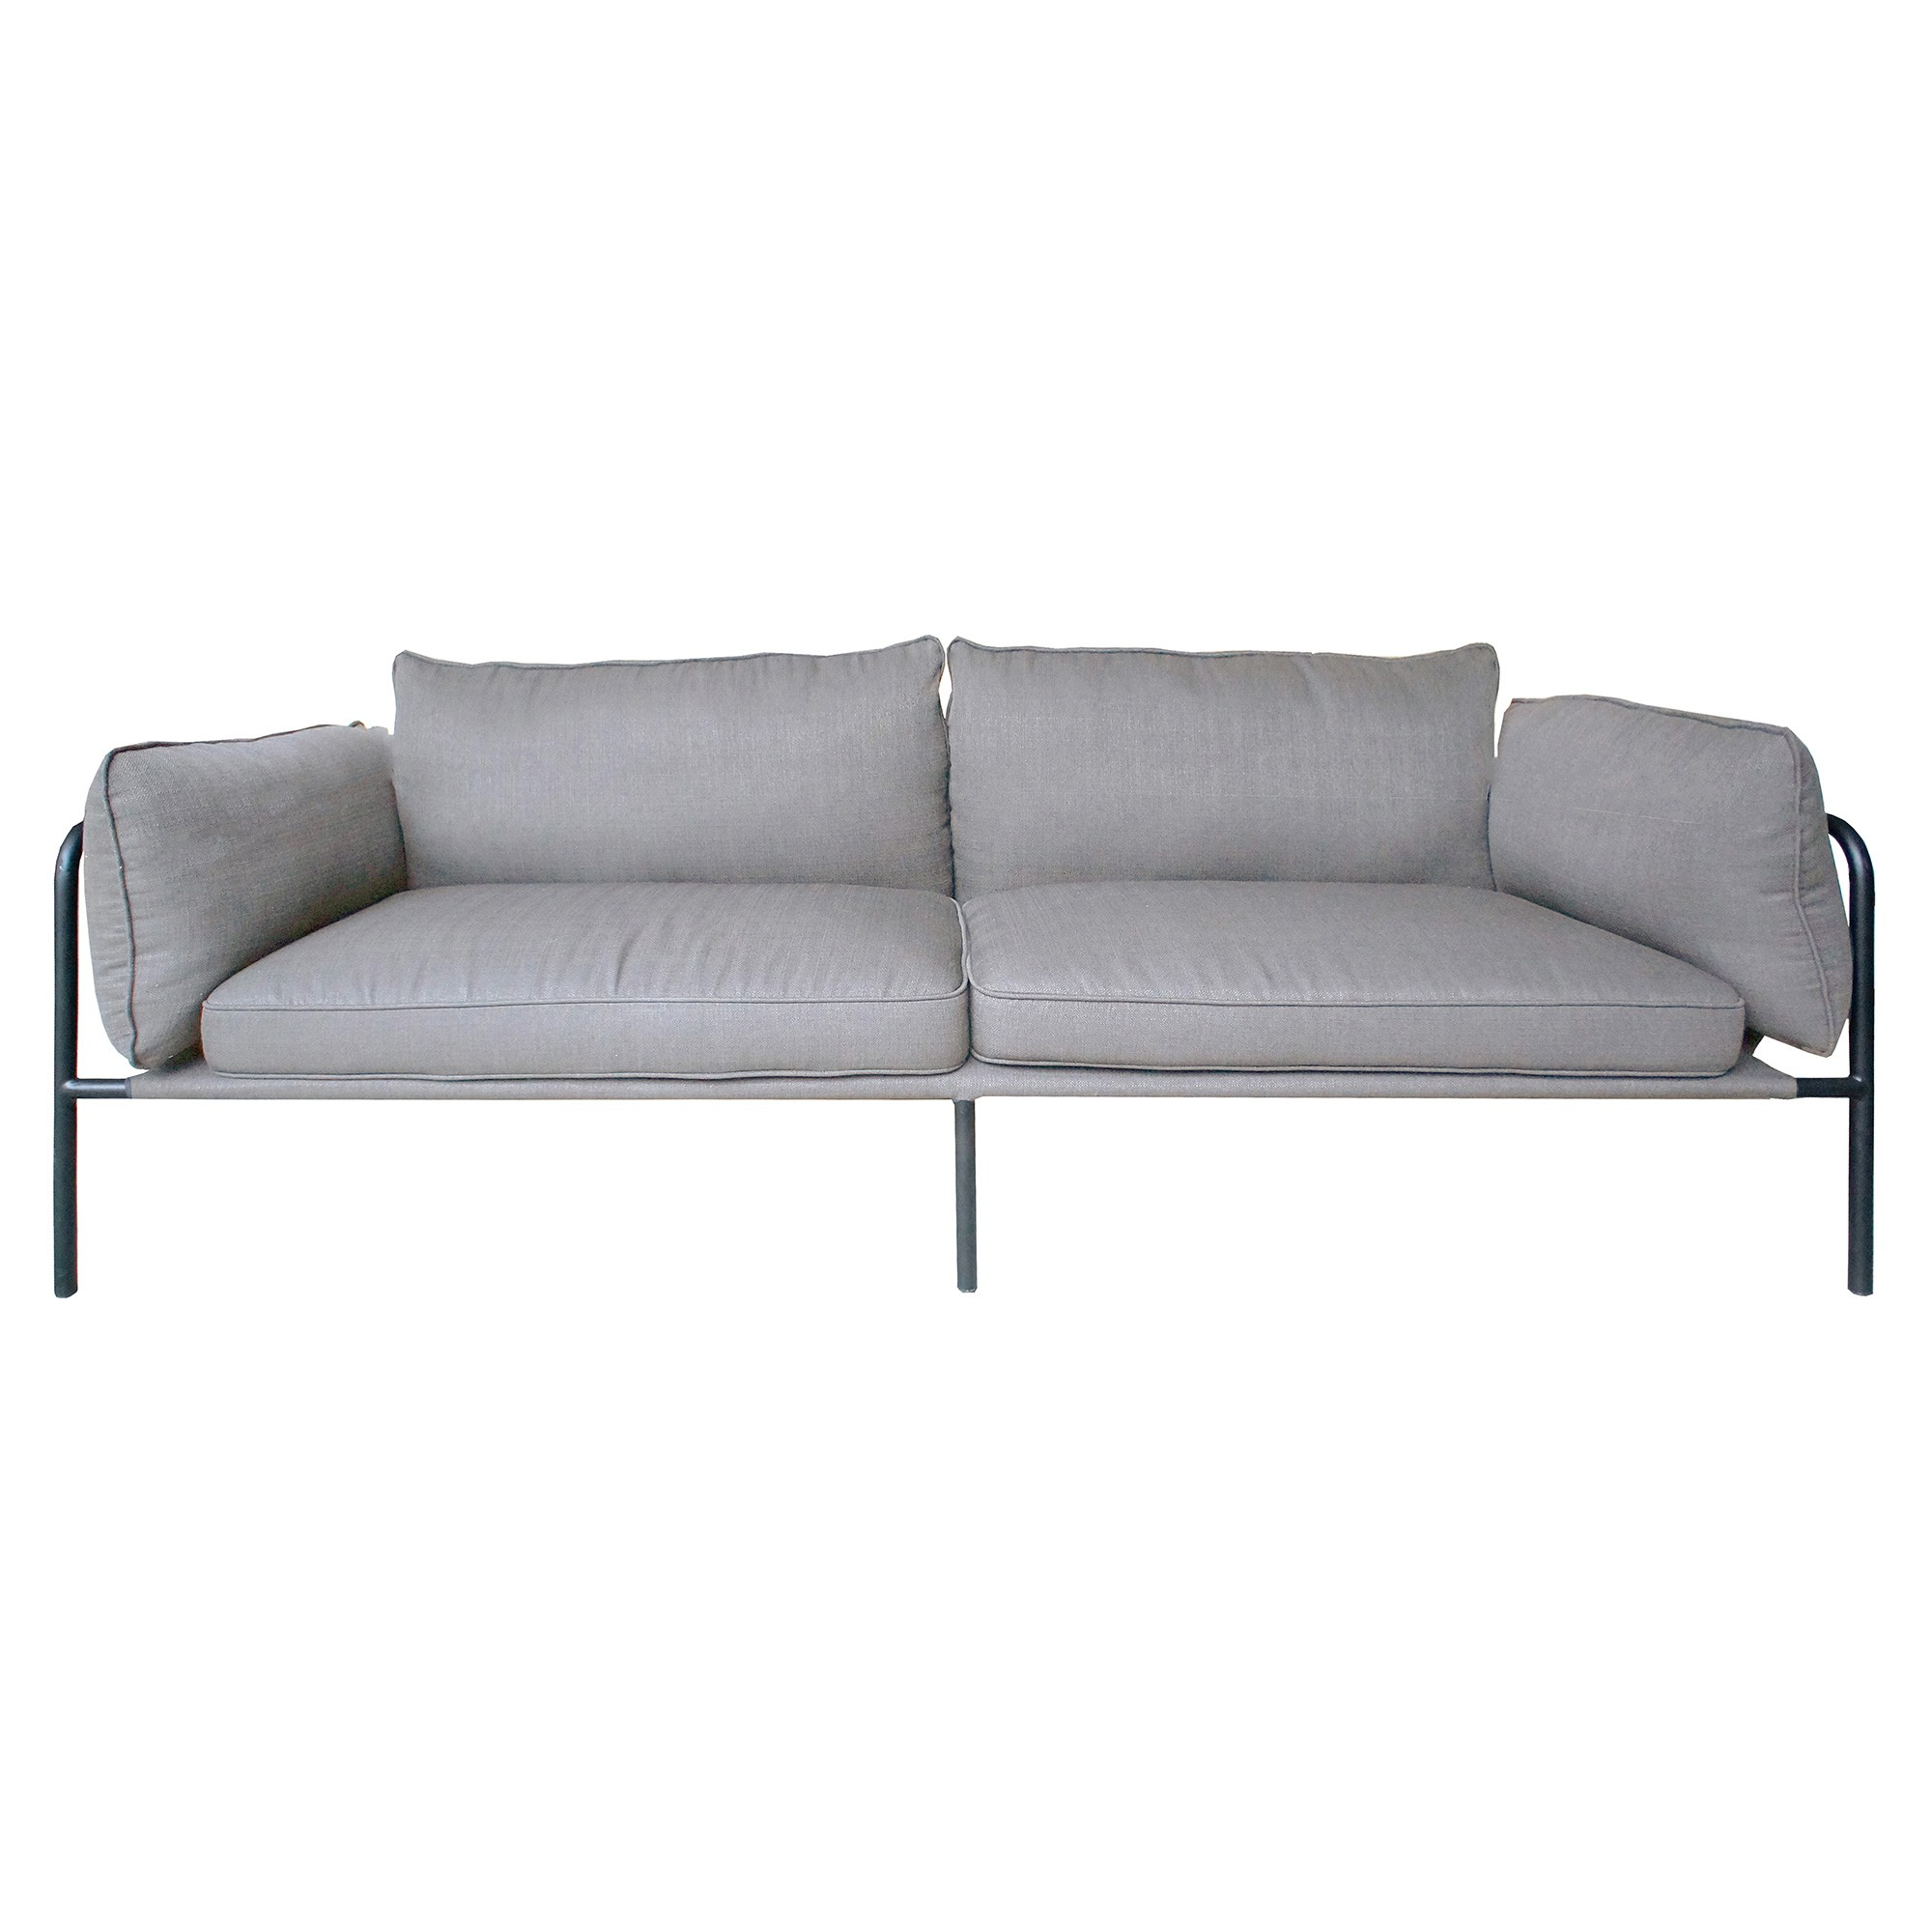 Bob Fabric Sofa, 3 Seater, Grey